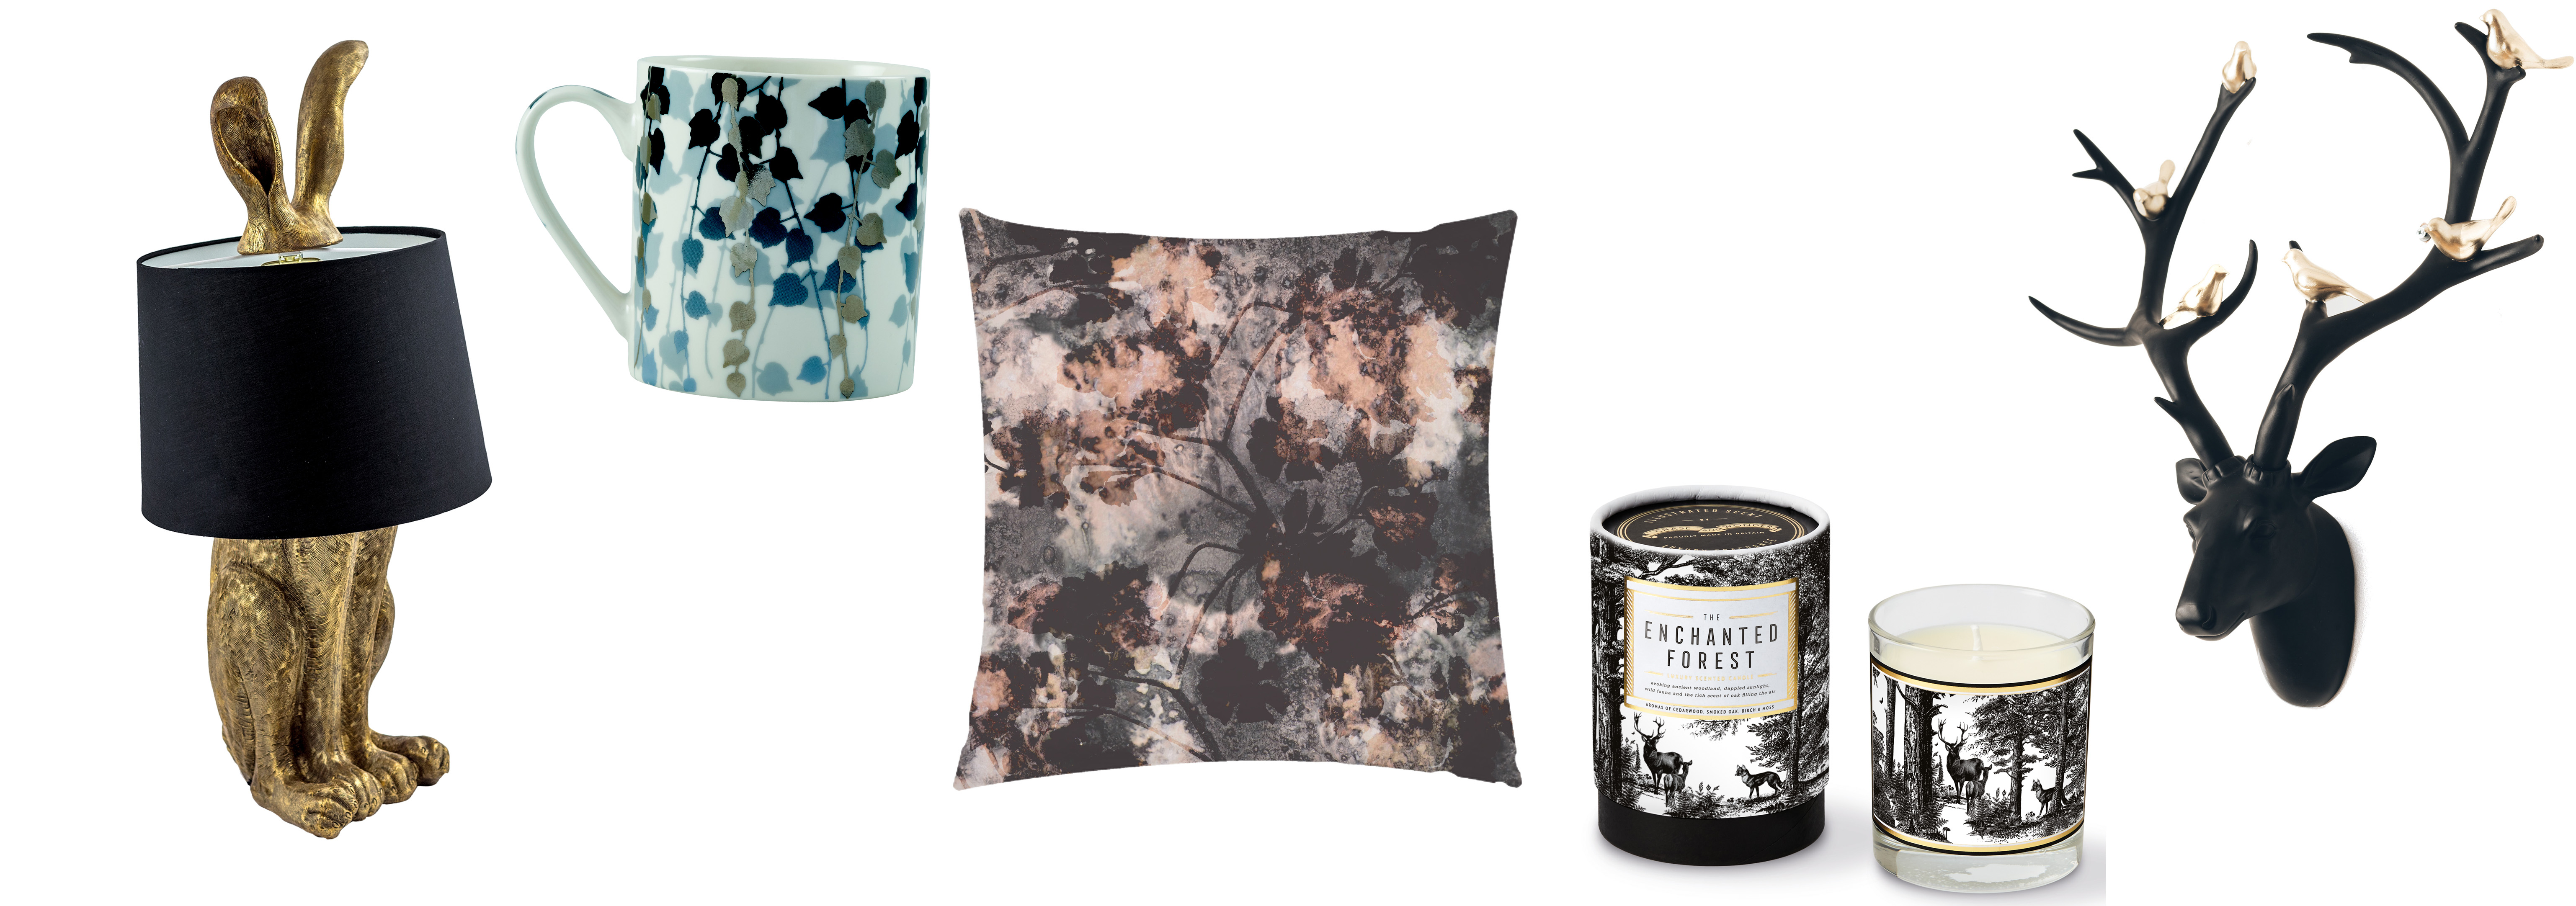 (L-R) Hare Lamp With Black Shade, £139.95, Audenza; Boston Ivy Mug, Midnight Blue, £12, Clarissa Hulse; Inky Floral by Eleanor Soper, £30, ArtWow; The Enchanted Forest Candle, £32, Chase & Wonder; Hurn & Hurn Discoveries Deer Head With Gold Birds Wall Decoration, Black, £108, Hurn & Hurn (Audenza/Clarissa Hulse; Art Wow; Chase & Wonder; Hurn & Hurn/PA)